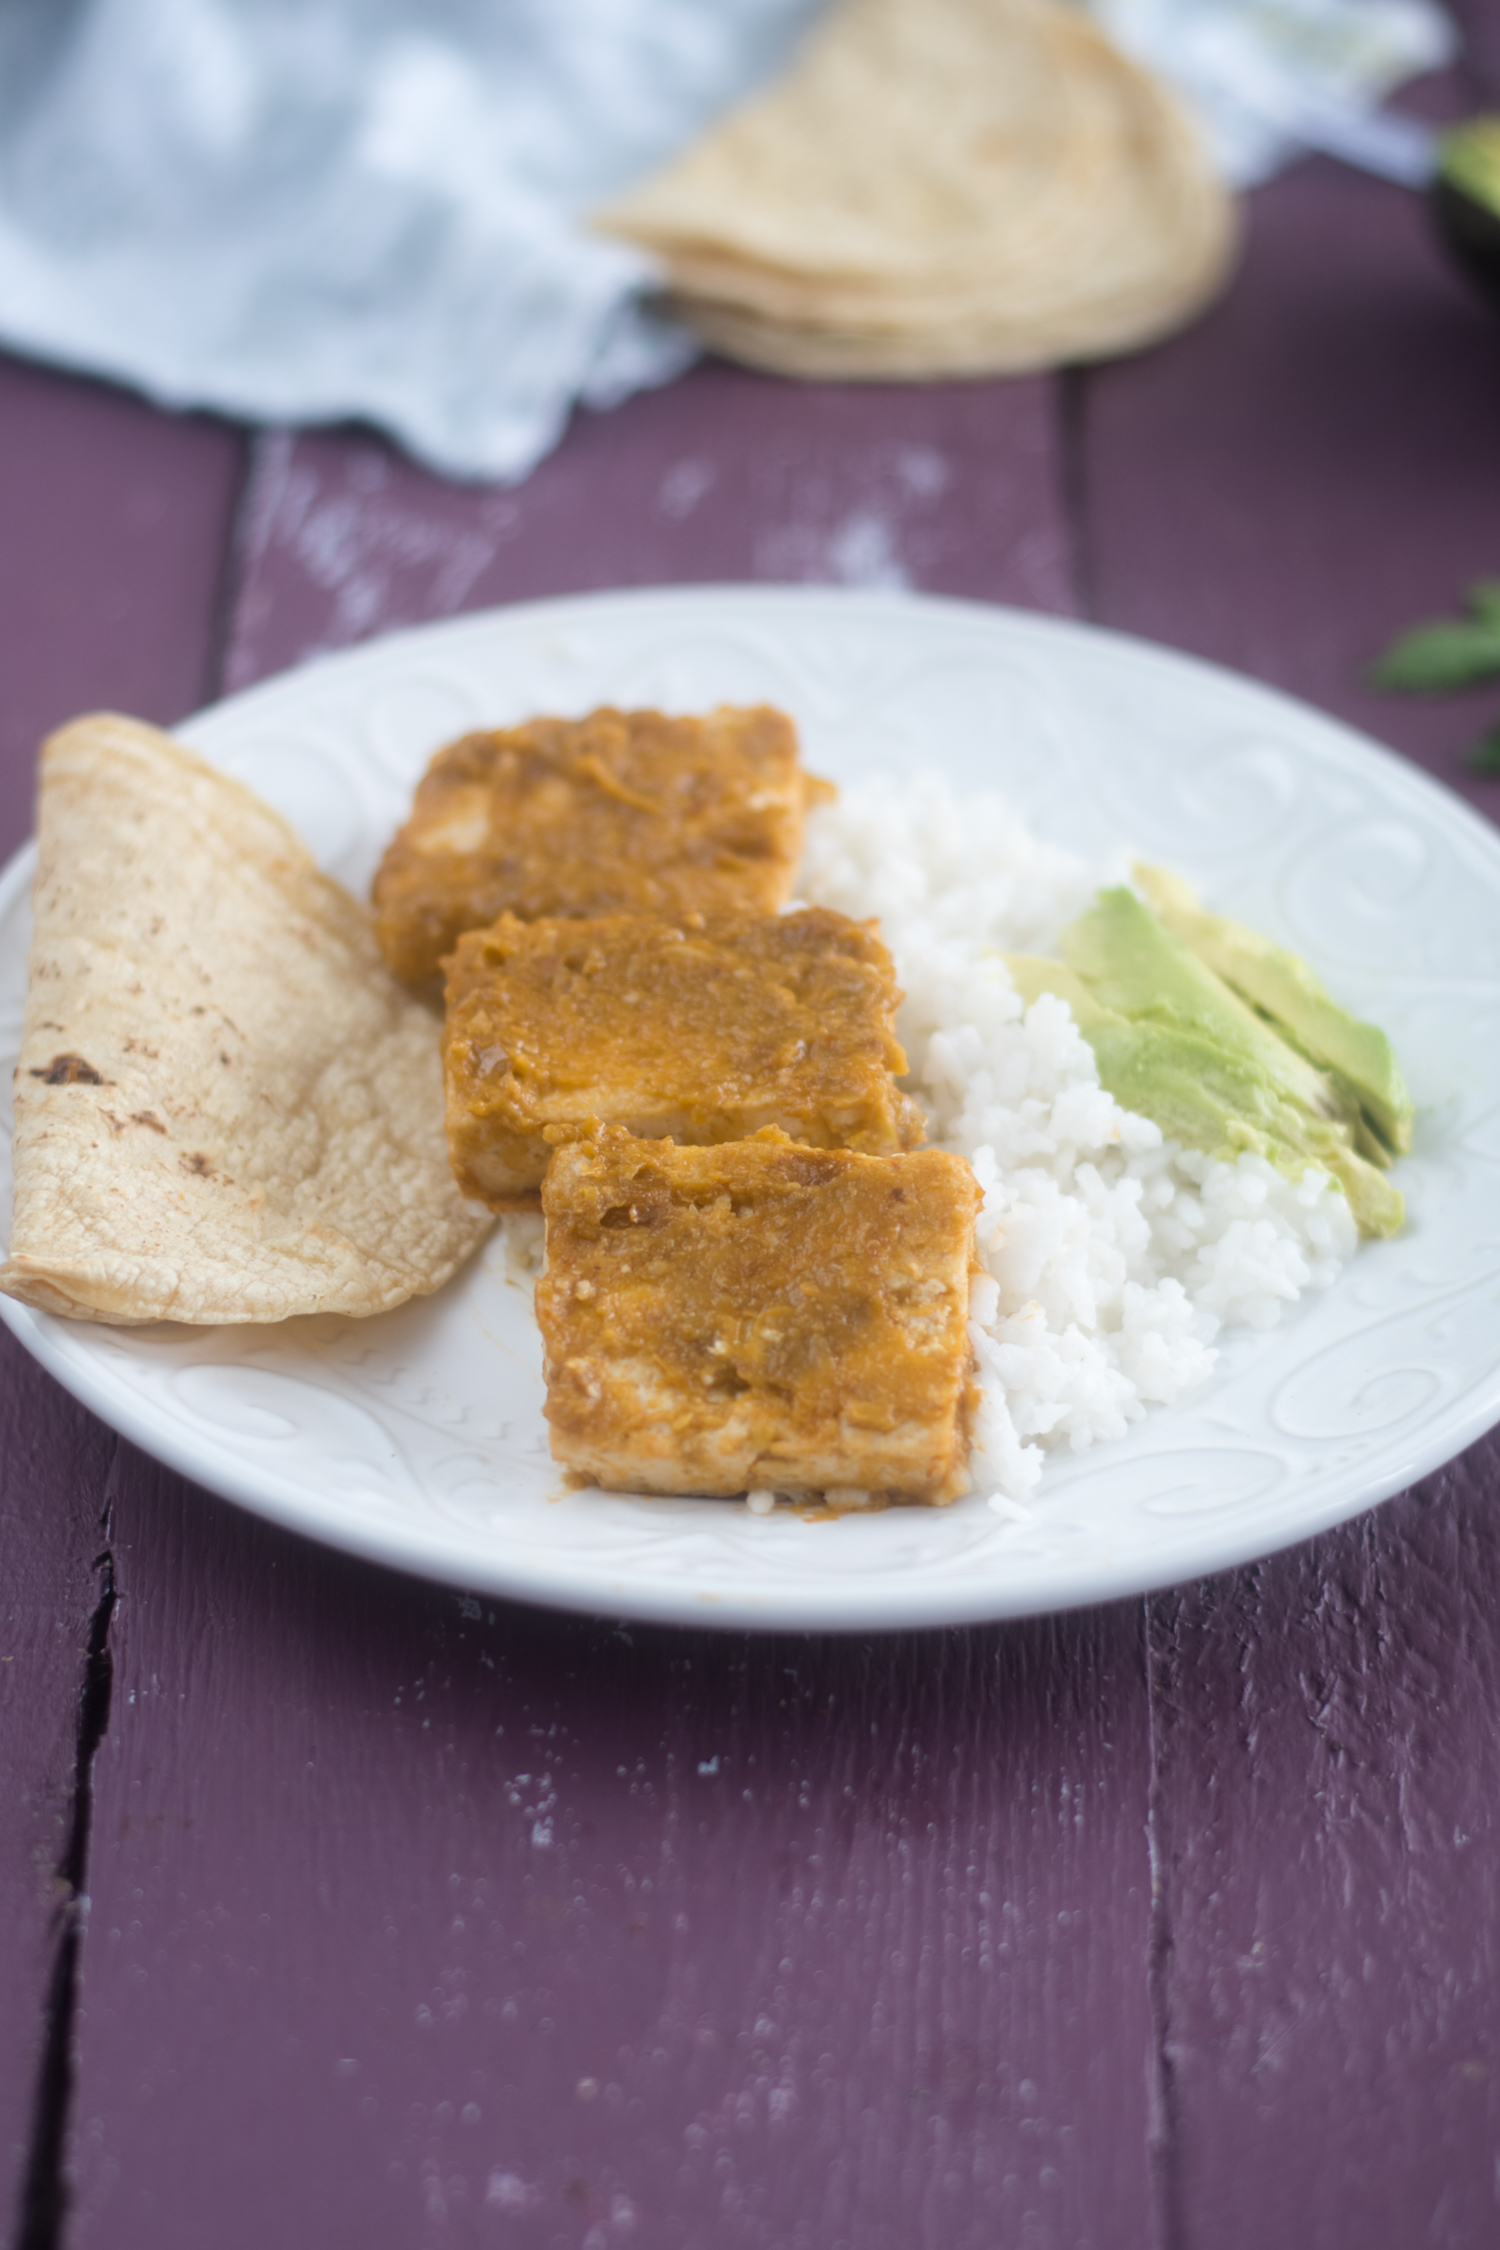 Tomatillo Chipotle Tofu is a flavorful plant-based entree. Tofu is simmered in a sweet and spicy sauce. #vegan #tofu #recipes #Mexican